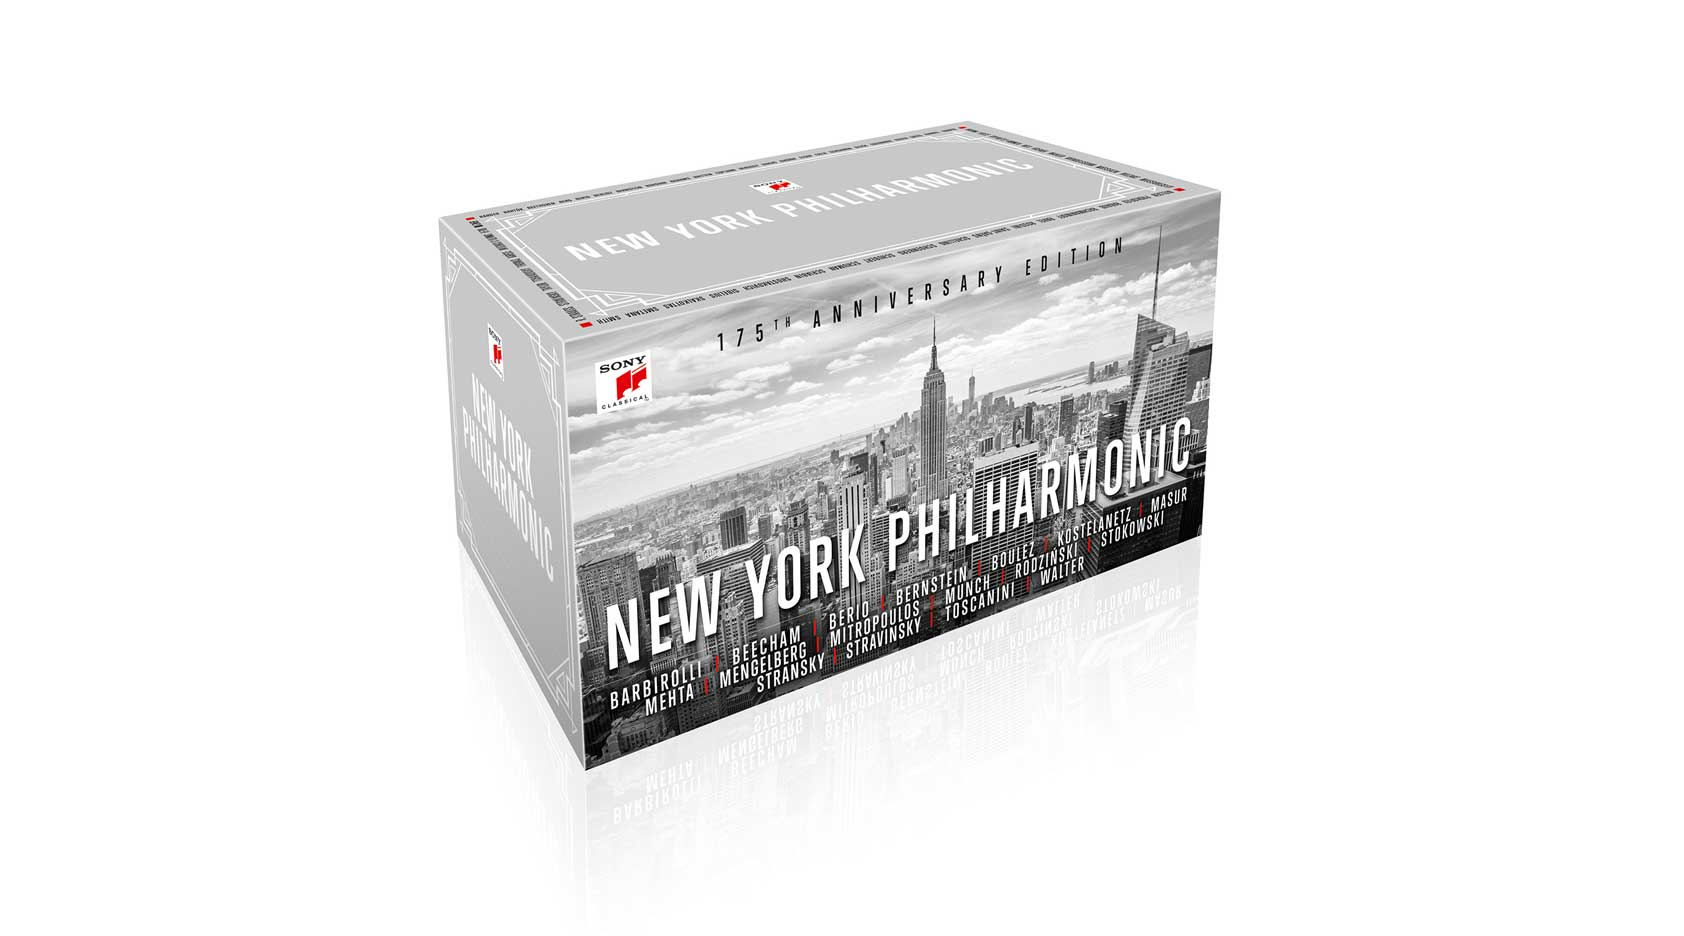 New York Philharmonic — 175th Anniversary Edition Box Set Released Today c1facf2d8d